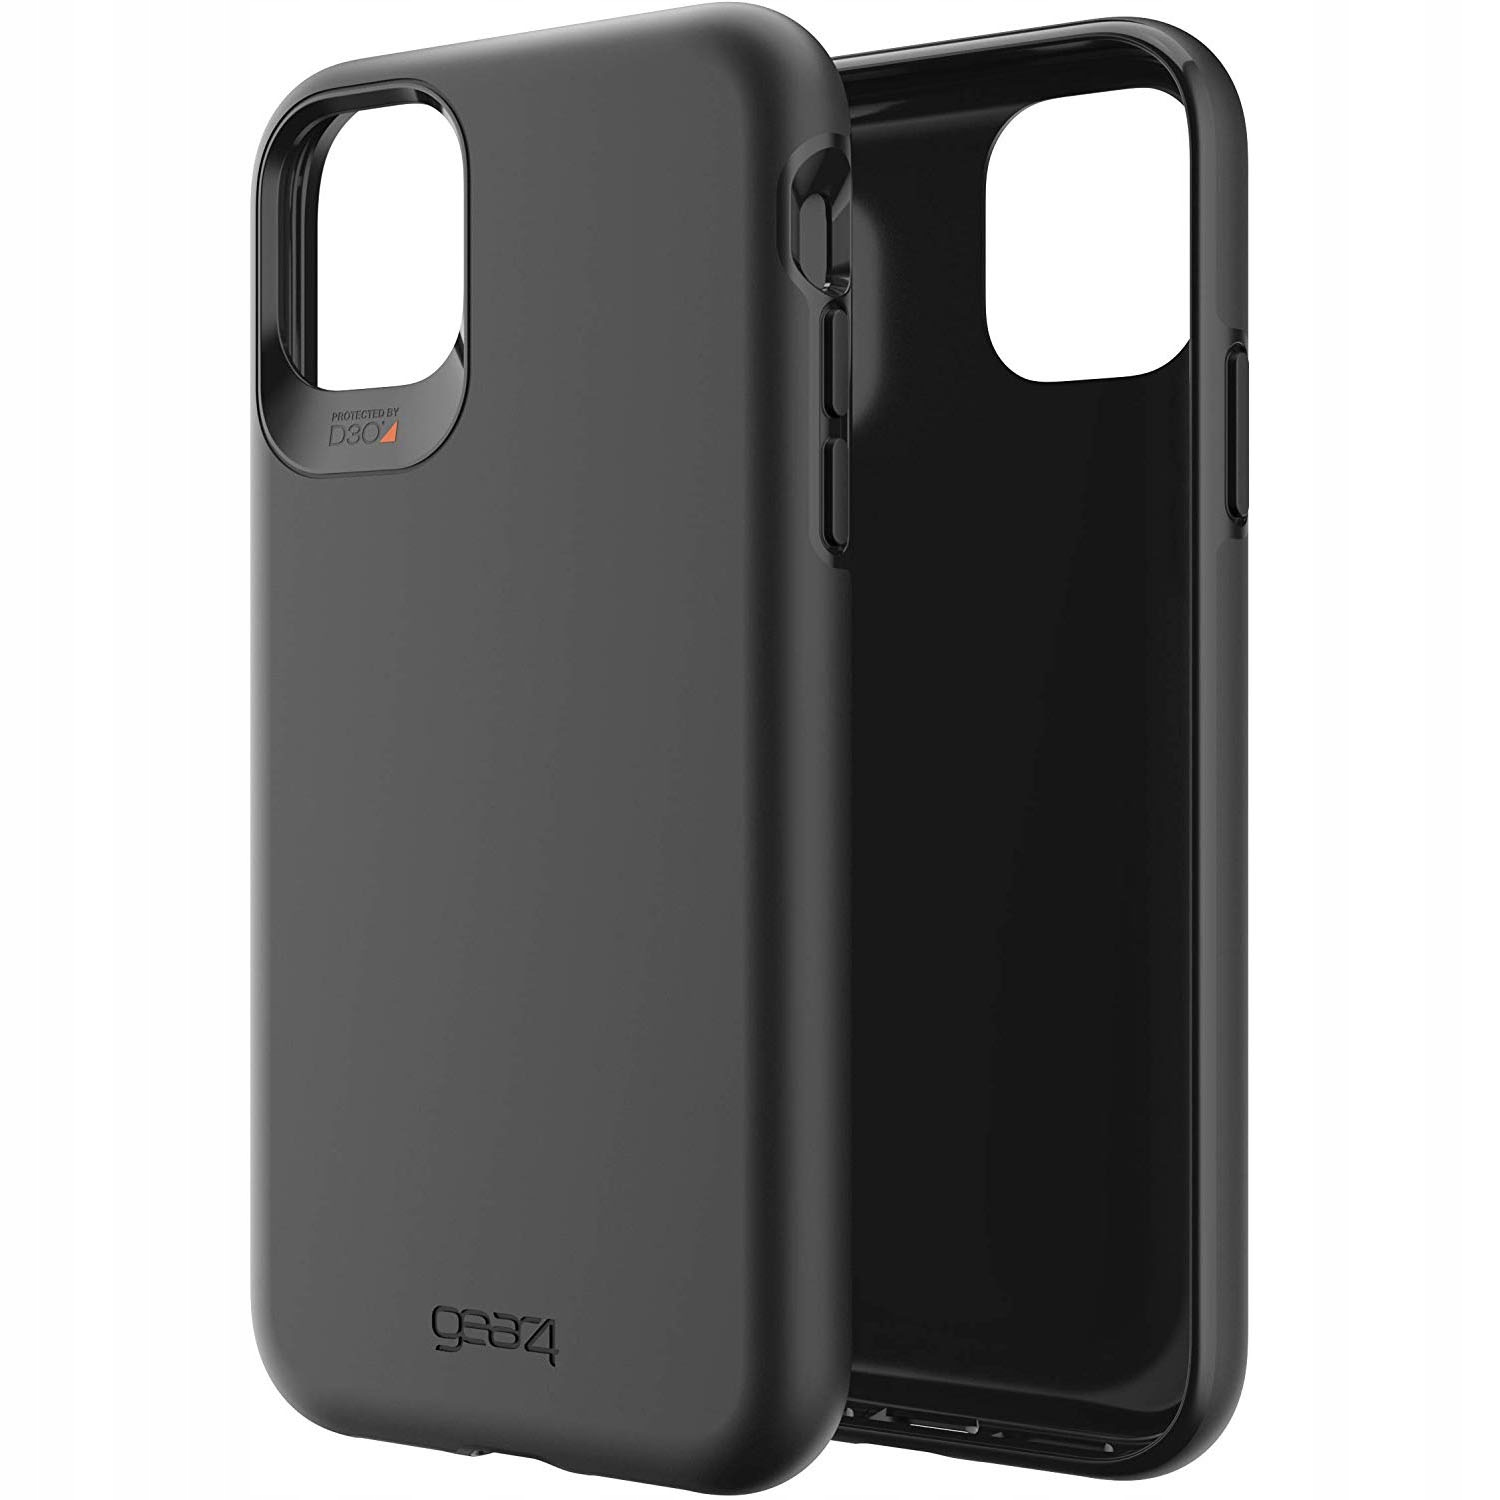 Etui do iPhone 11 Pro Max, Gear4 Holborn, cover